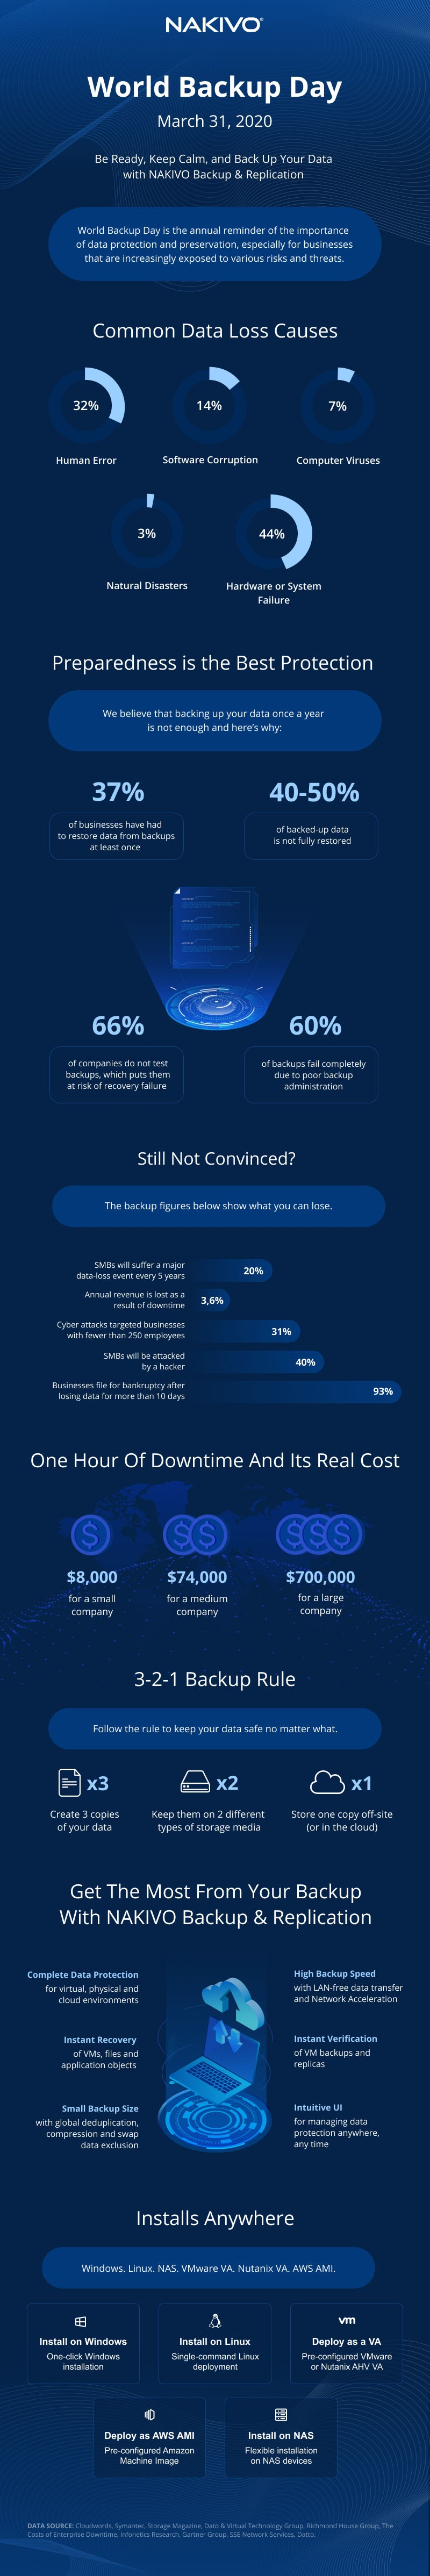 Microsoft Office 365 Data Can You Back Up? #infographic